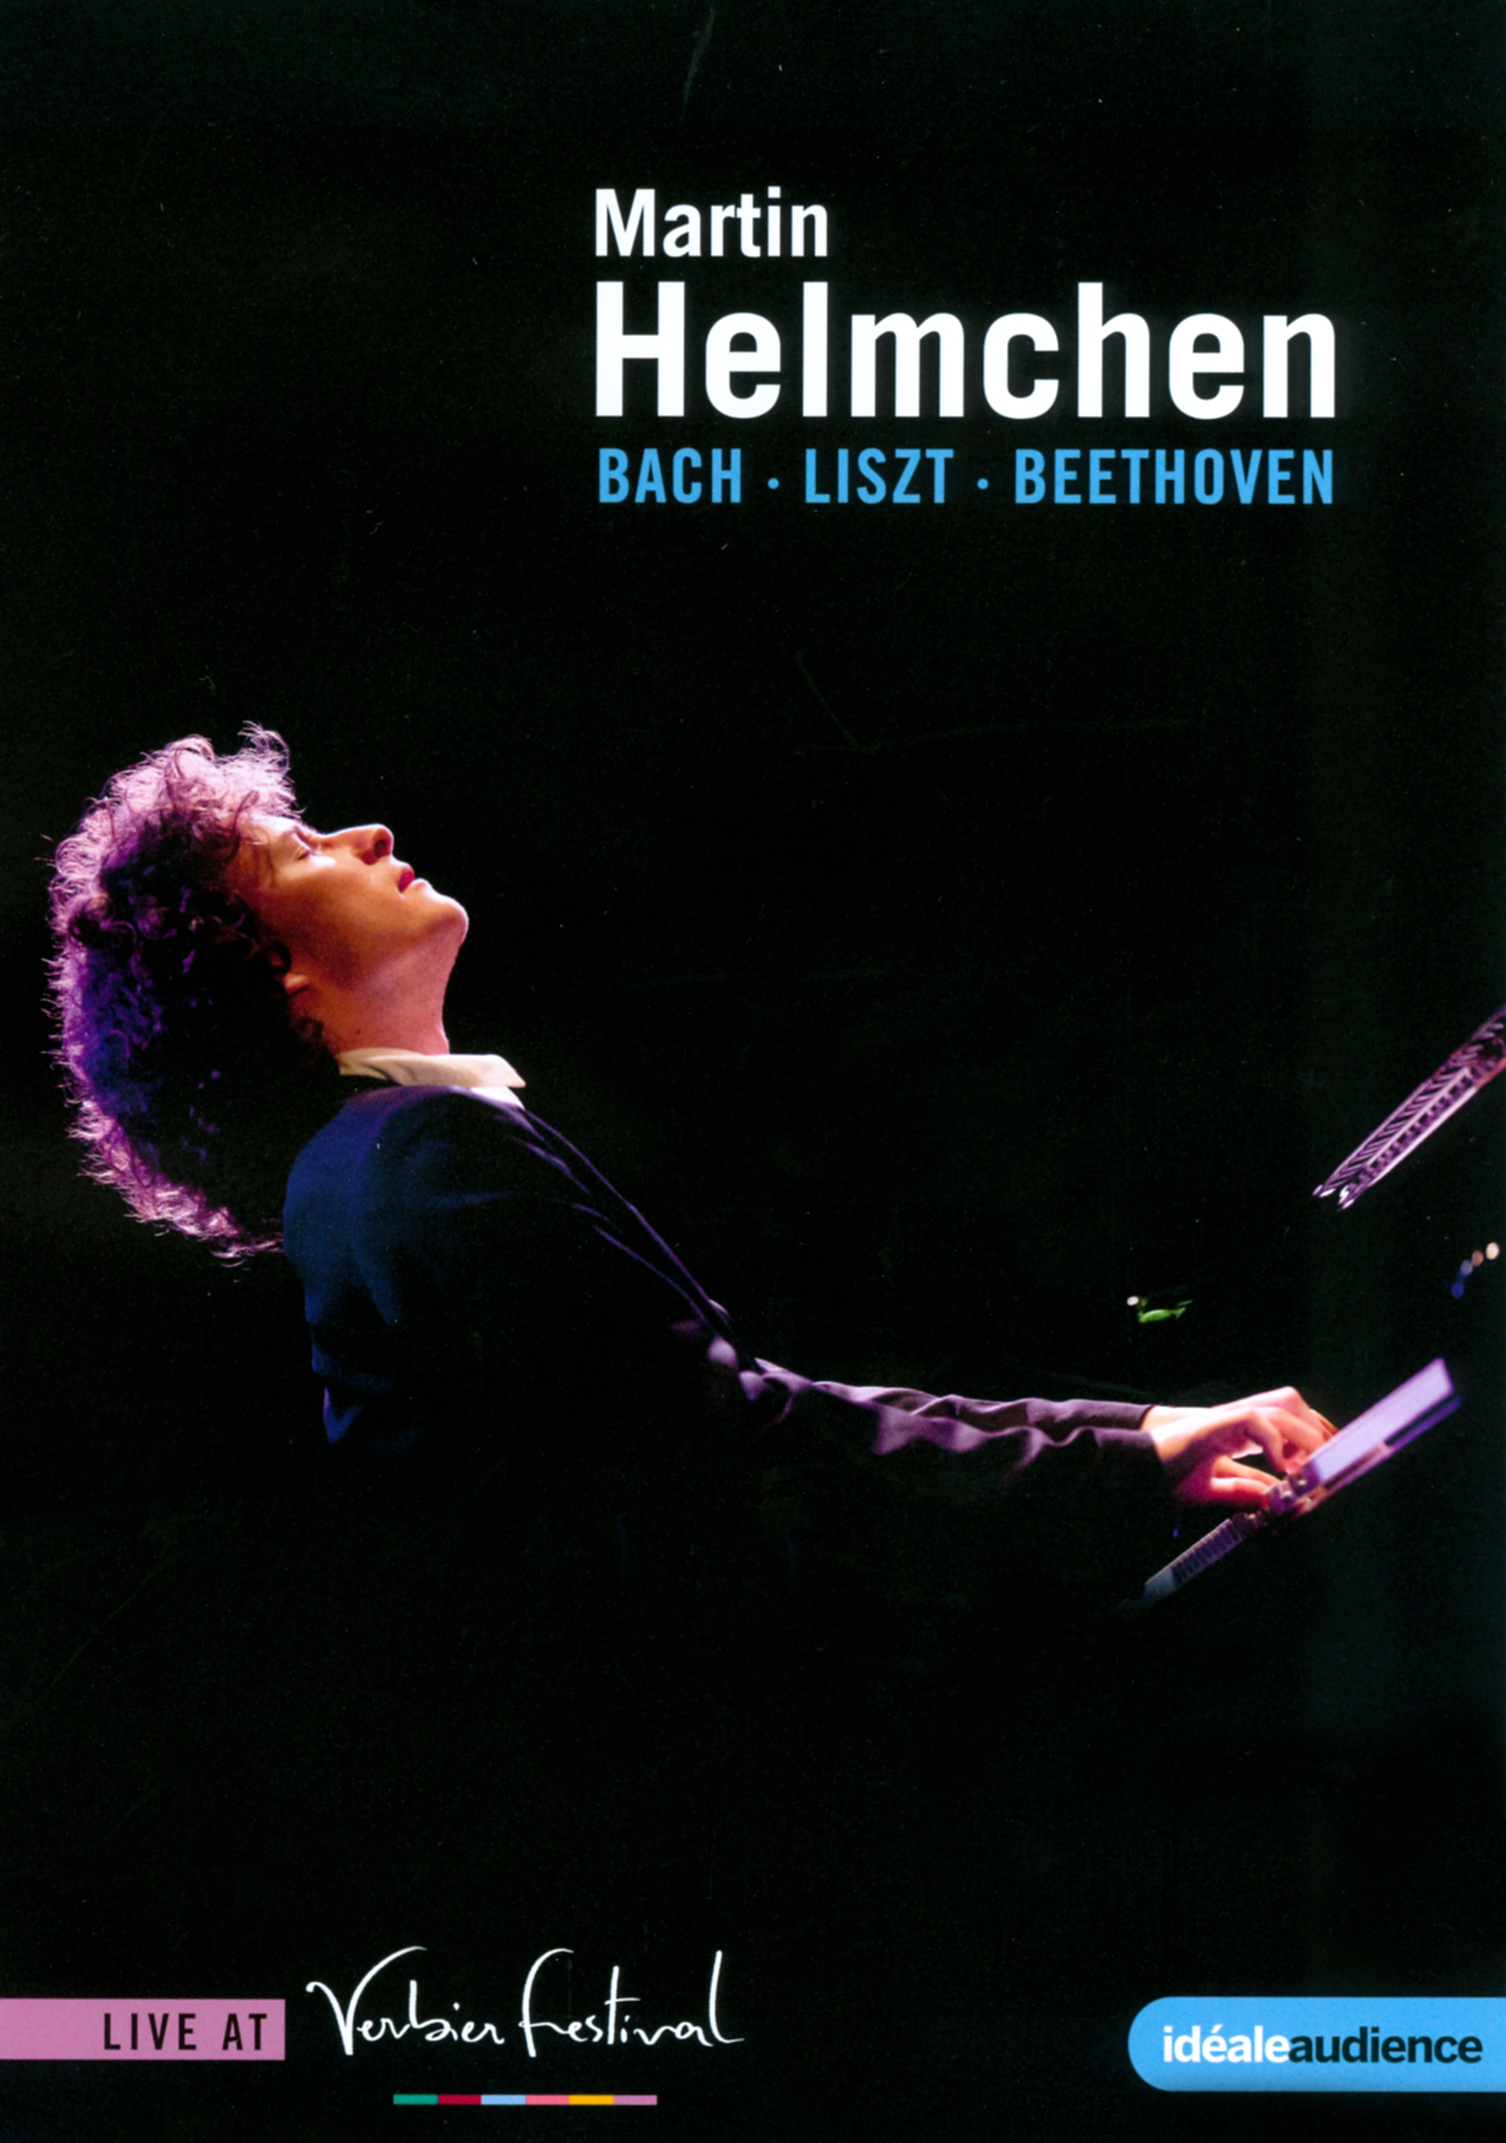 Martin Helmchen: Bach/Liszt/Beethoven - Live at Verbier Festival